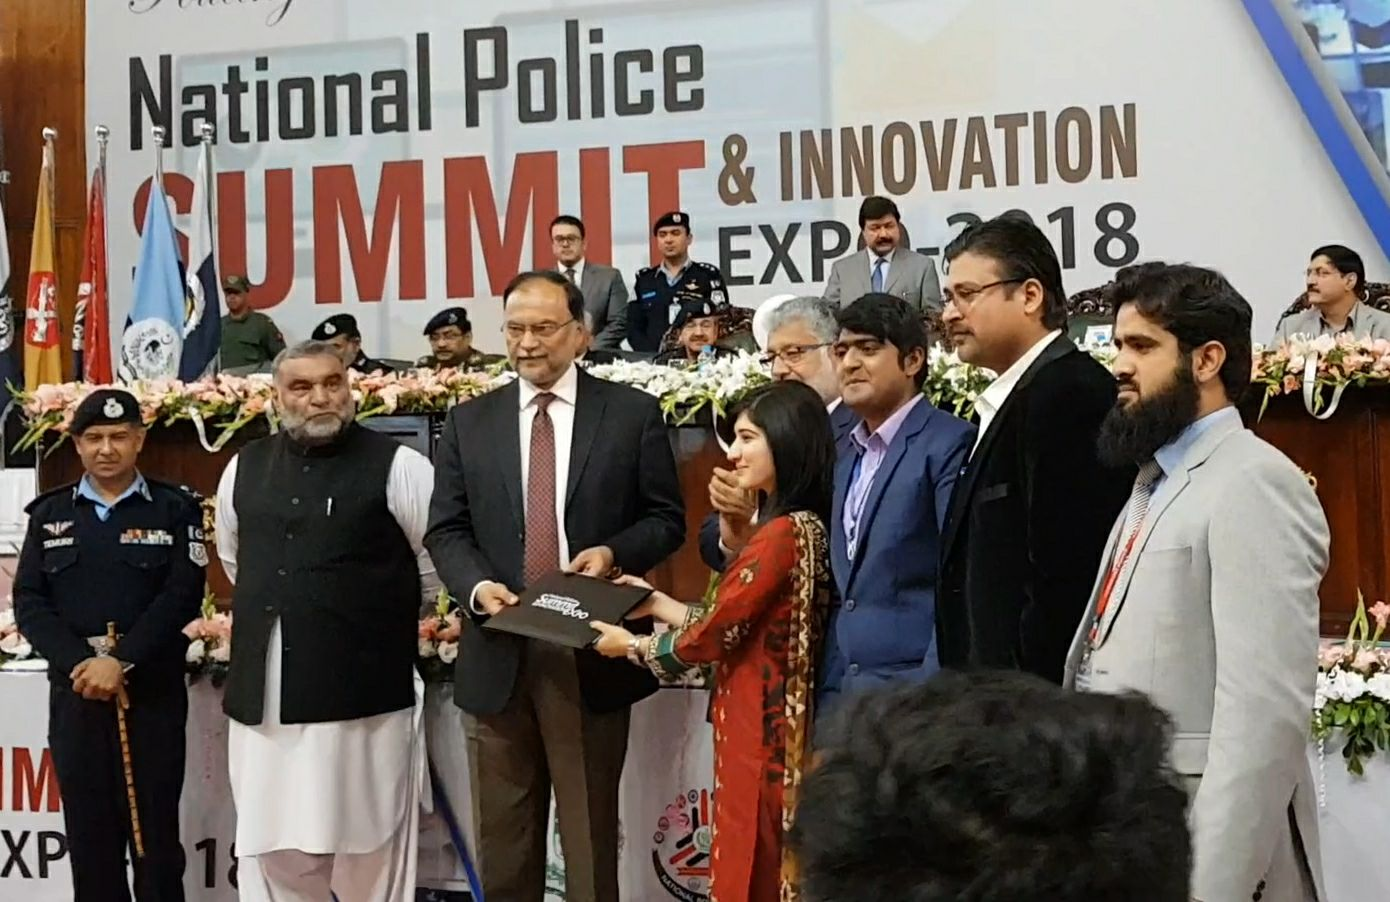 Bahria University's Startup won First Prize in National Police Summit and Innovation Expo 2018